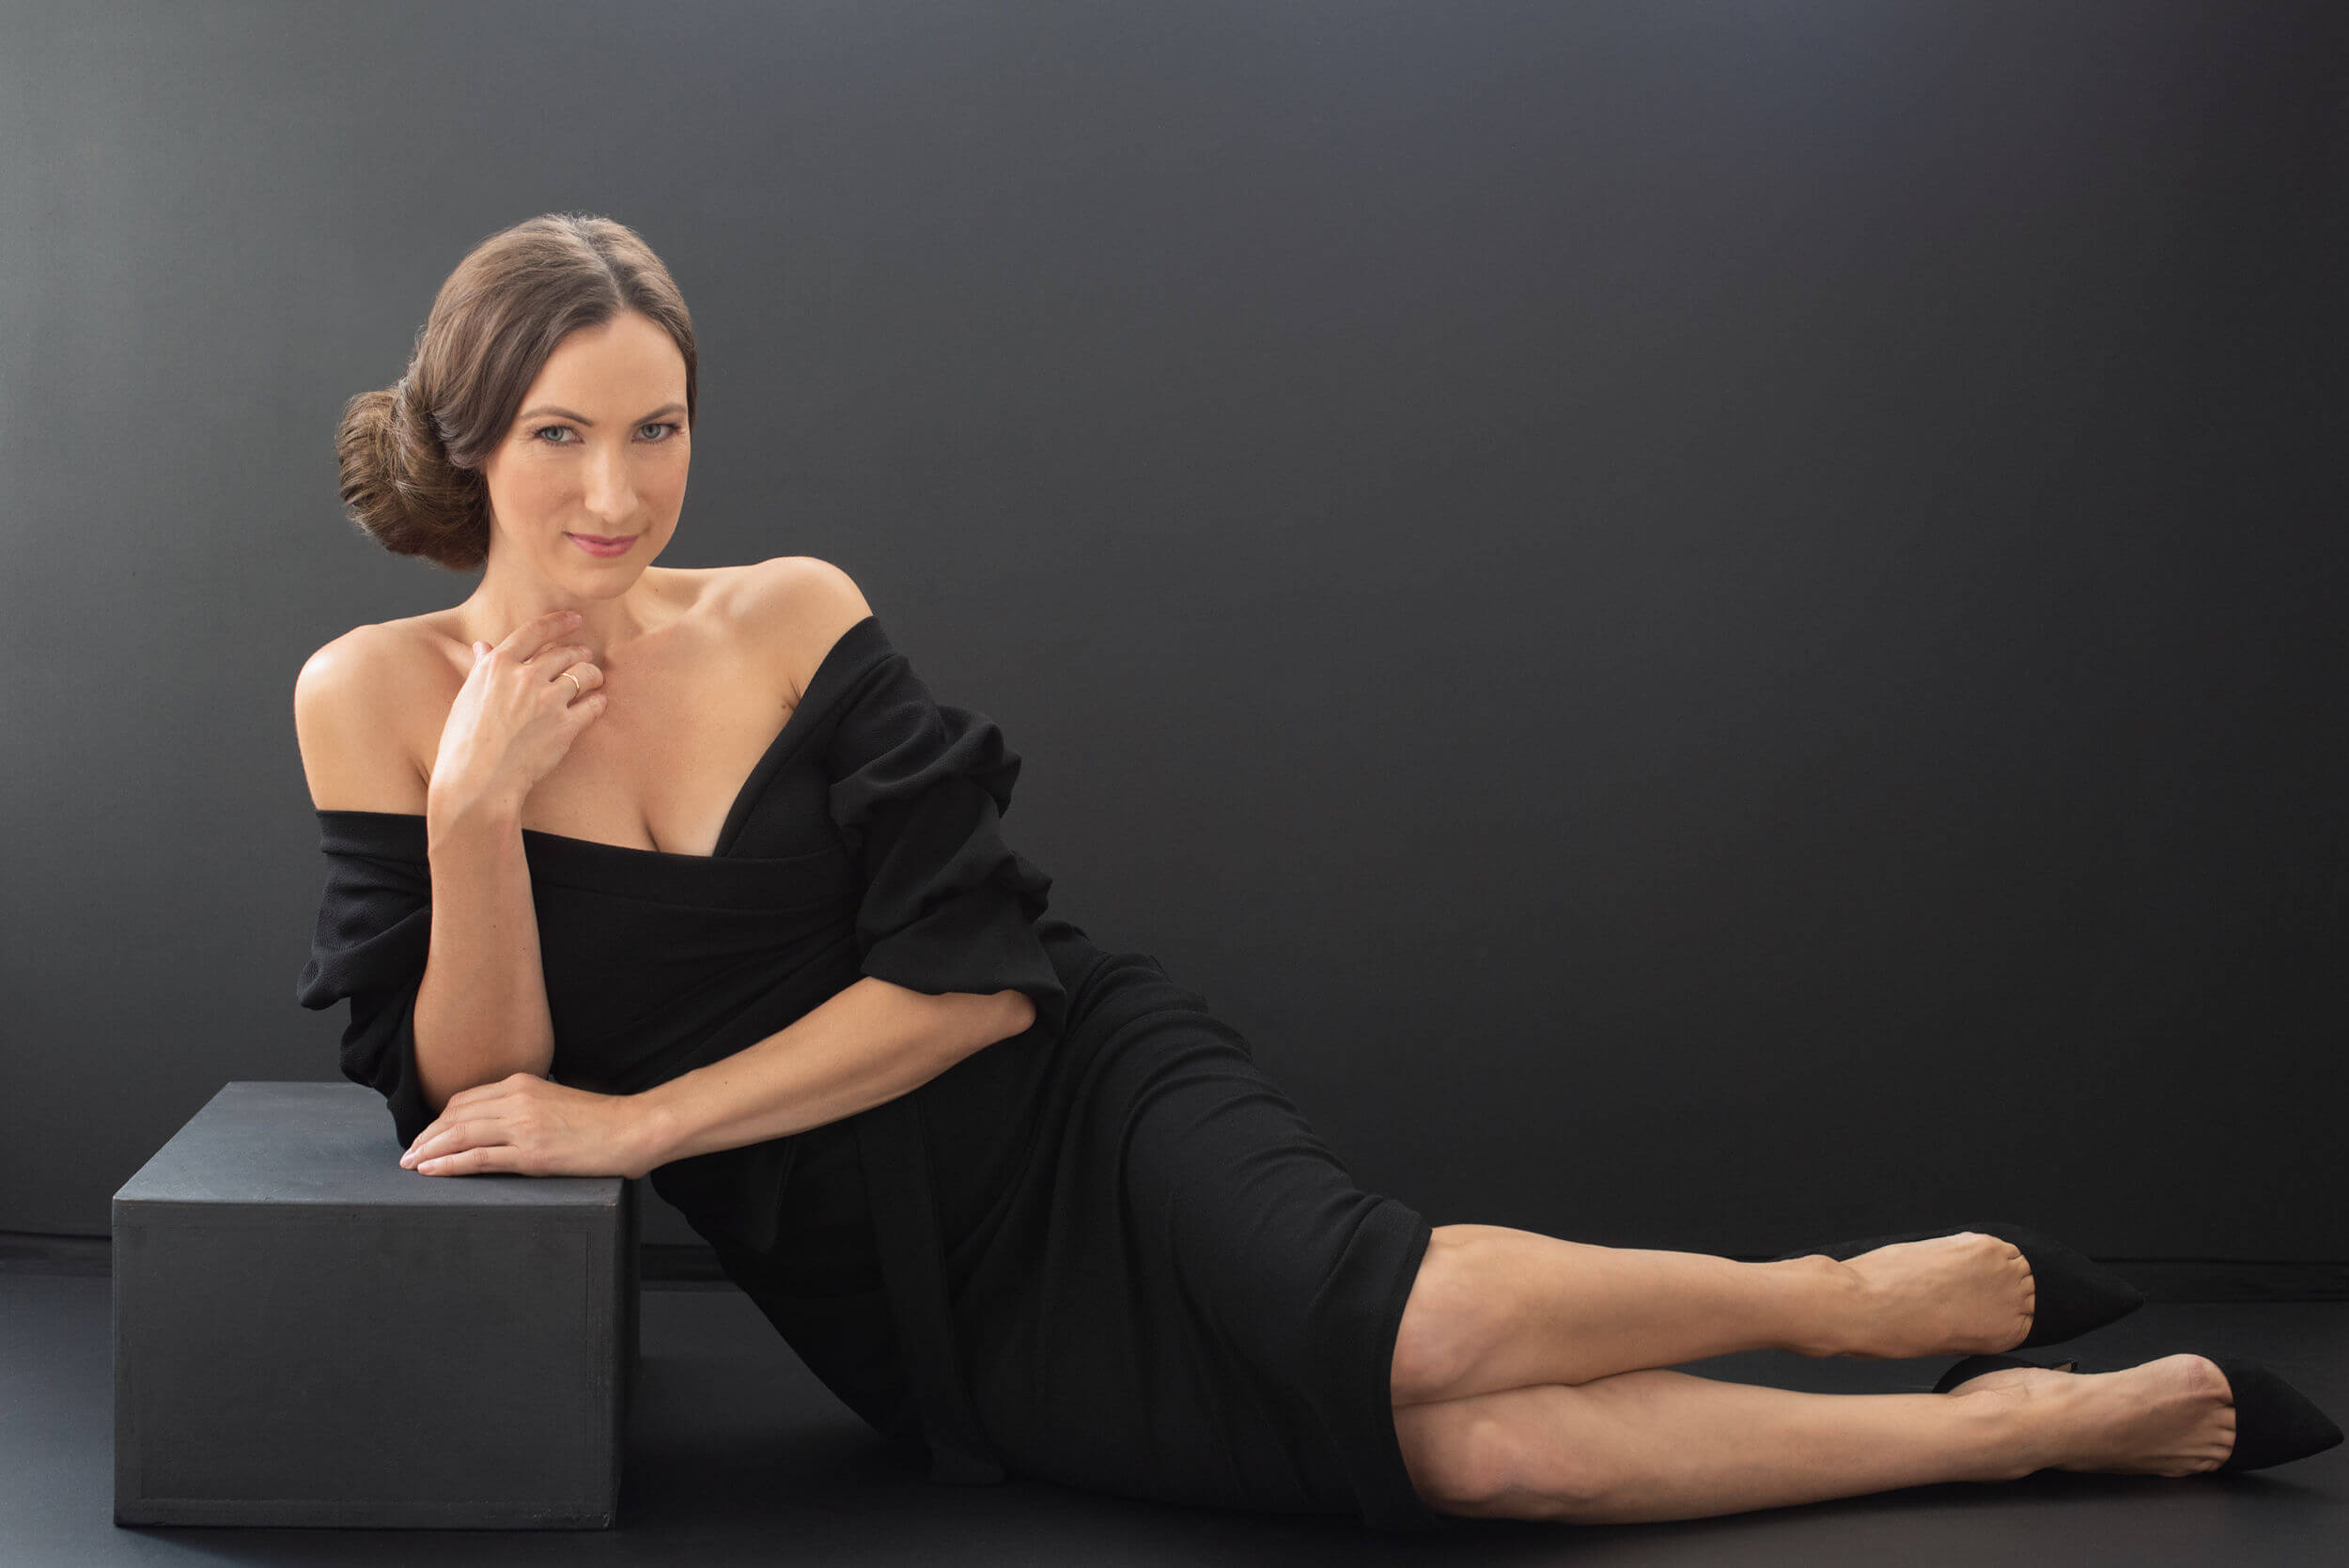 sexy woman in a black dress laying in the floor